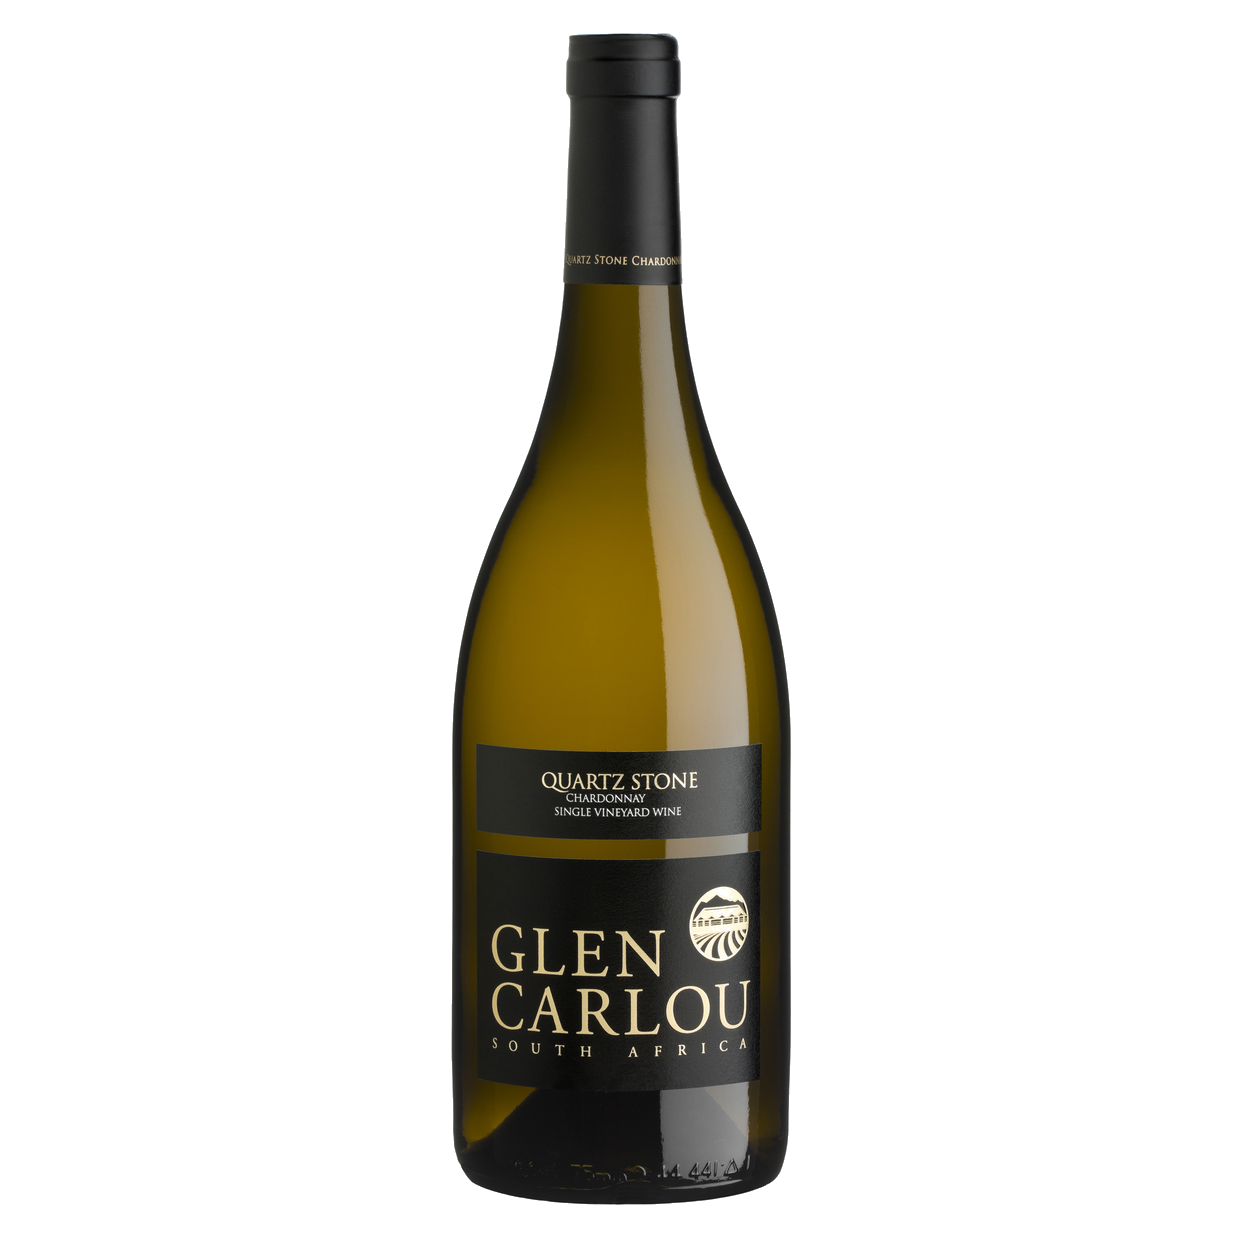 Glen Carlou Releases Its New Quartz Stone Chardonnay photo